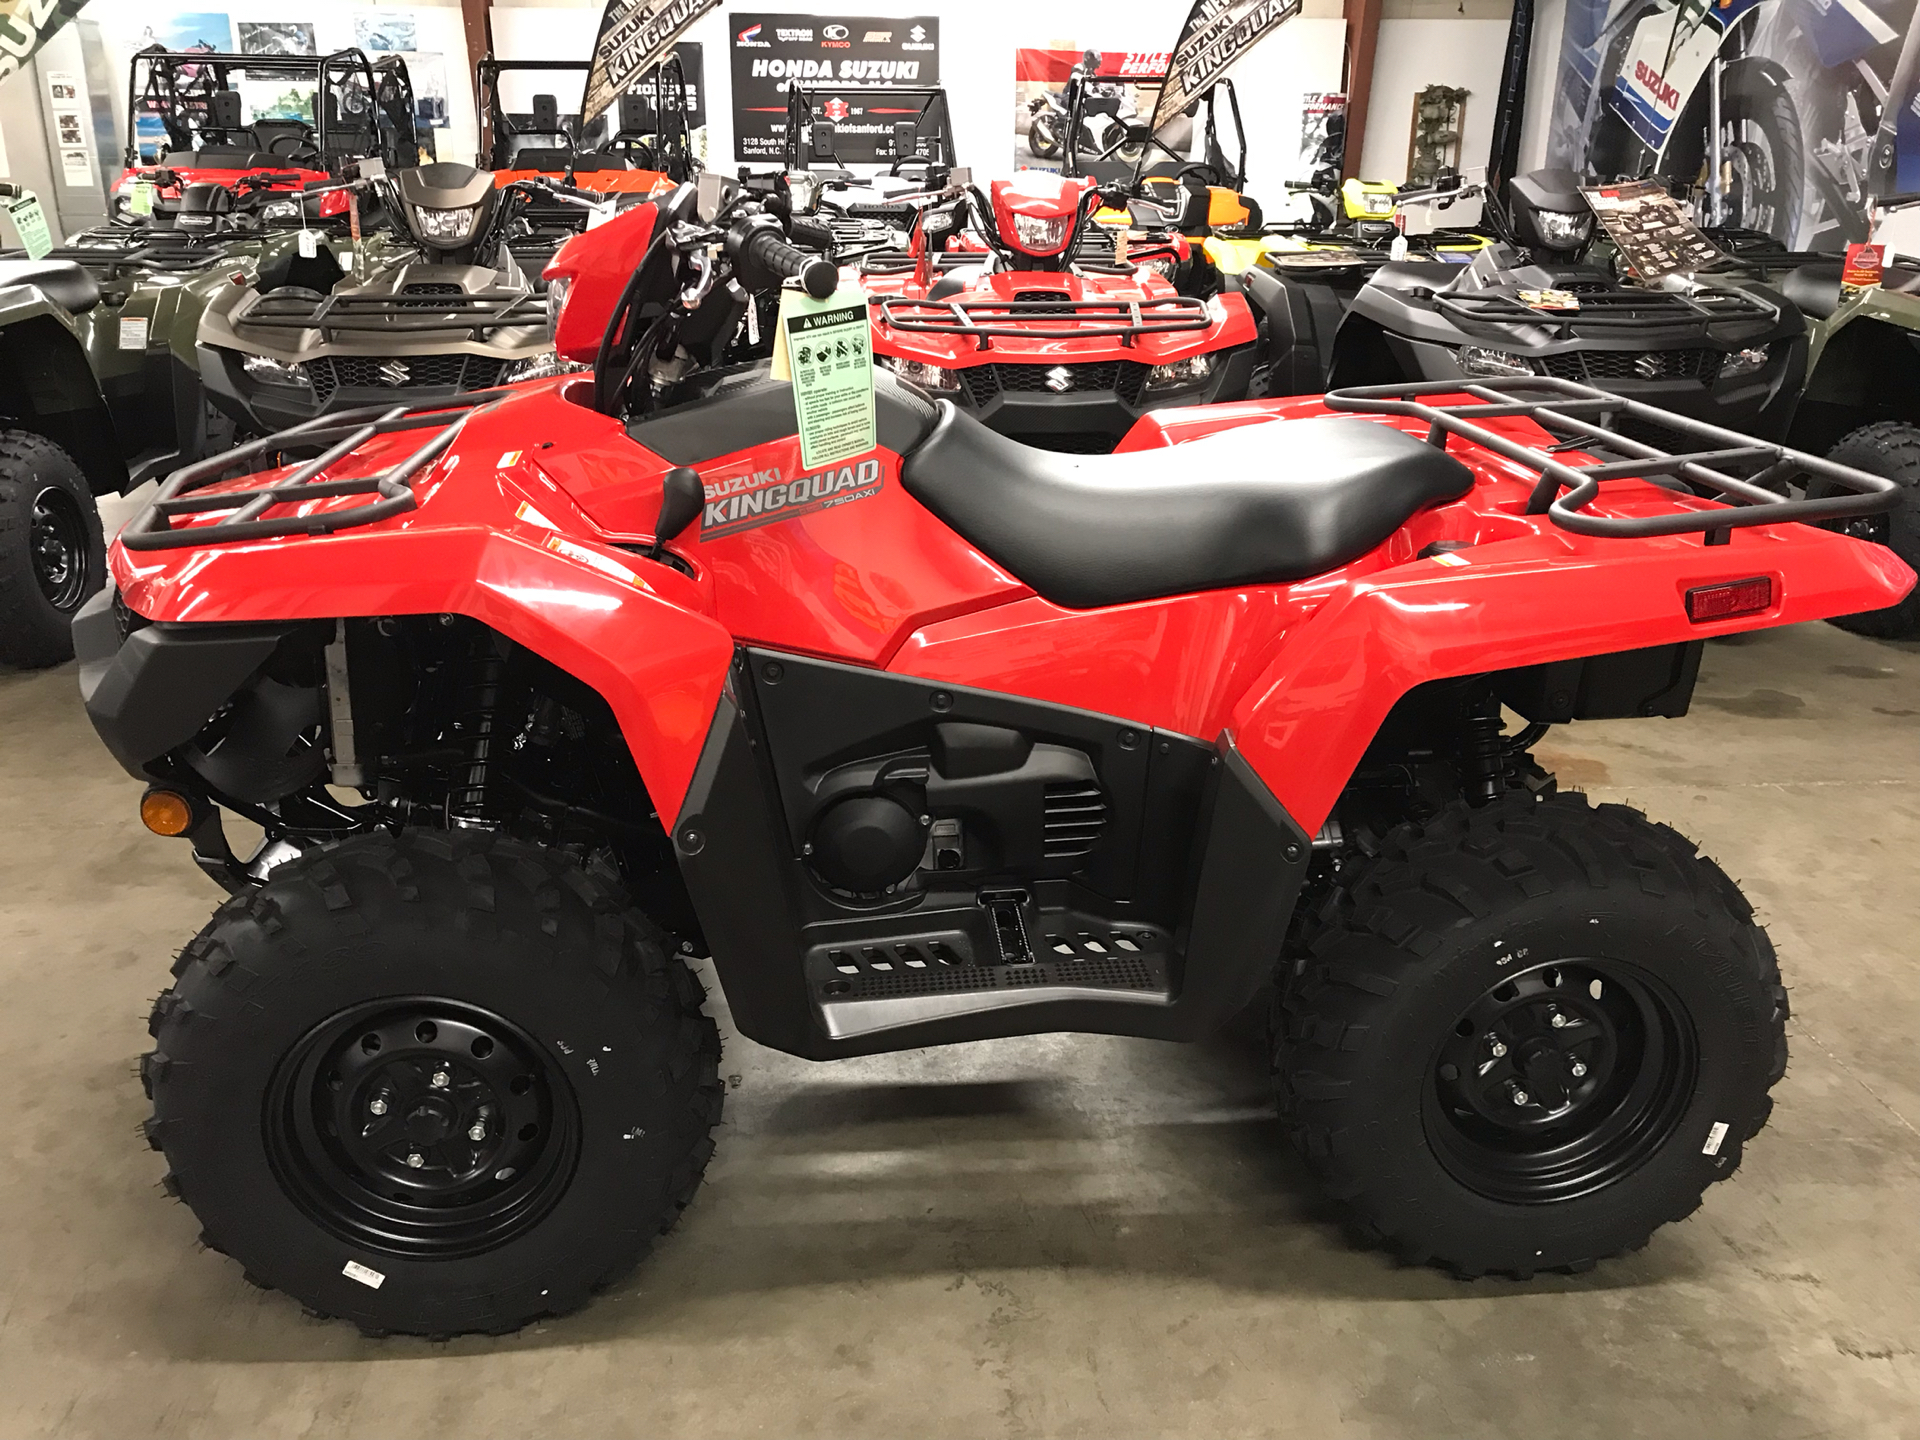 2020 Suzuki KingQuad 750AXi Power Steering in Sanford, North Carolina - Photo 8